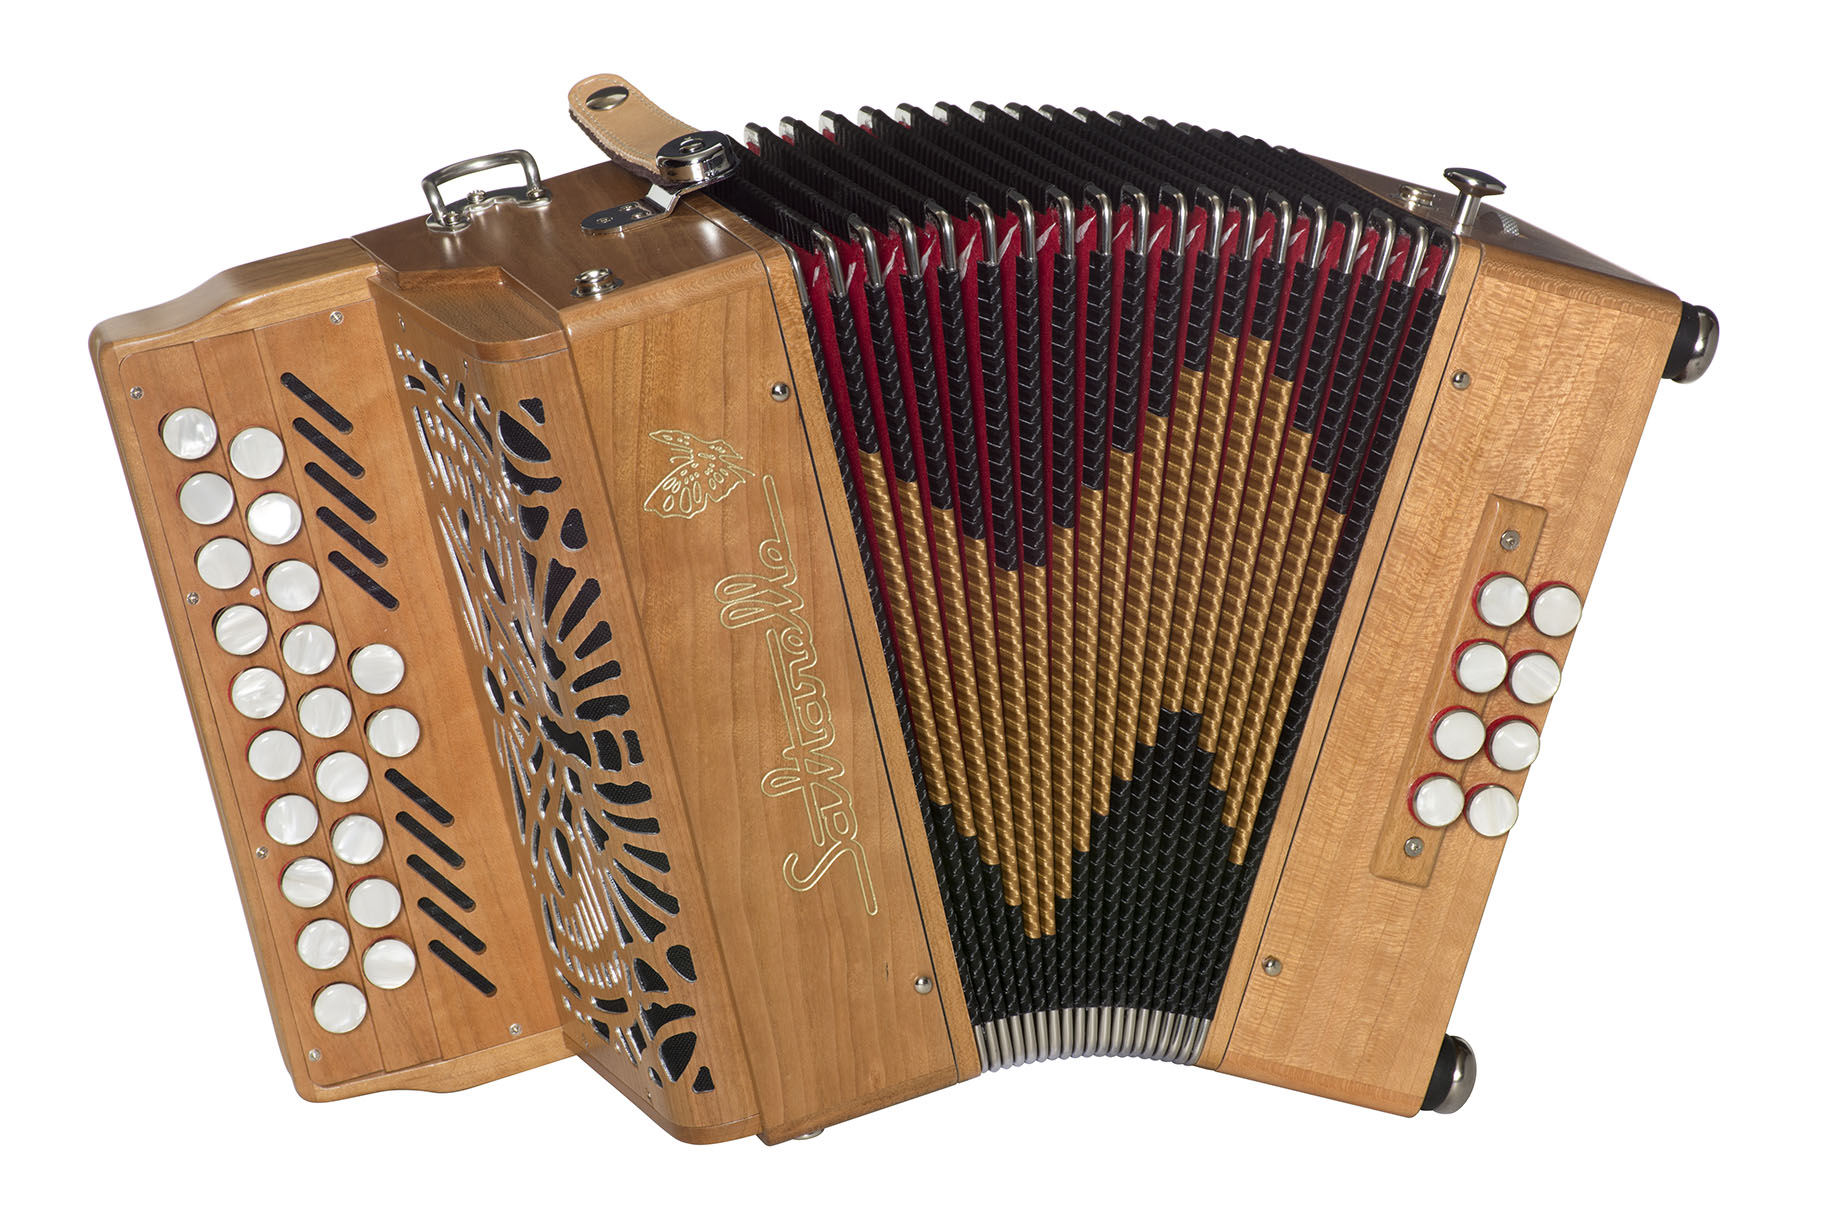 Saltarelle Selkie button accordion